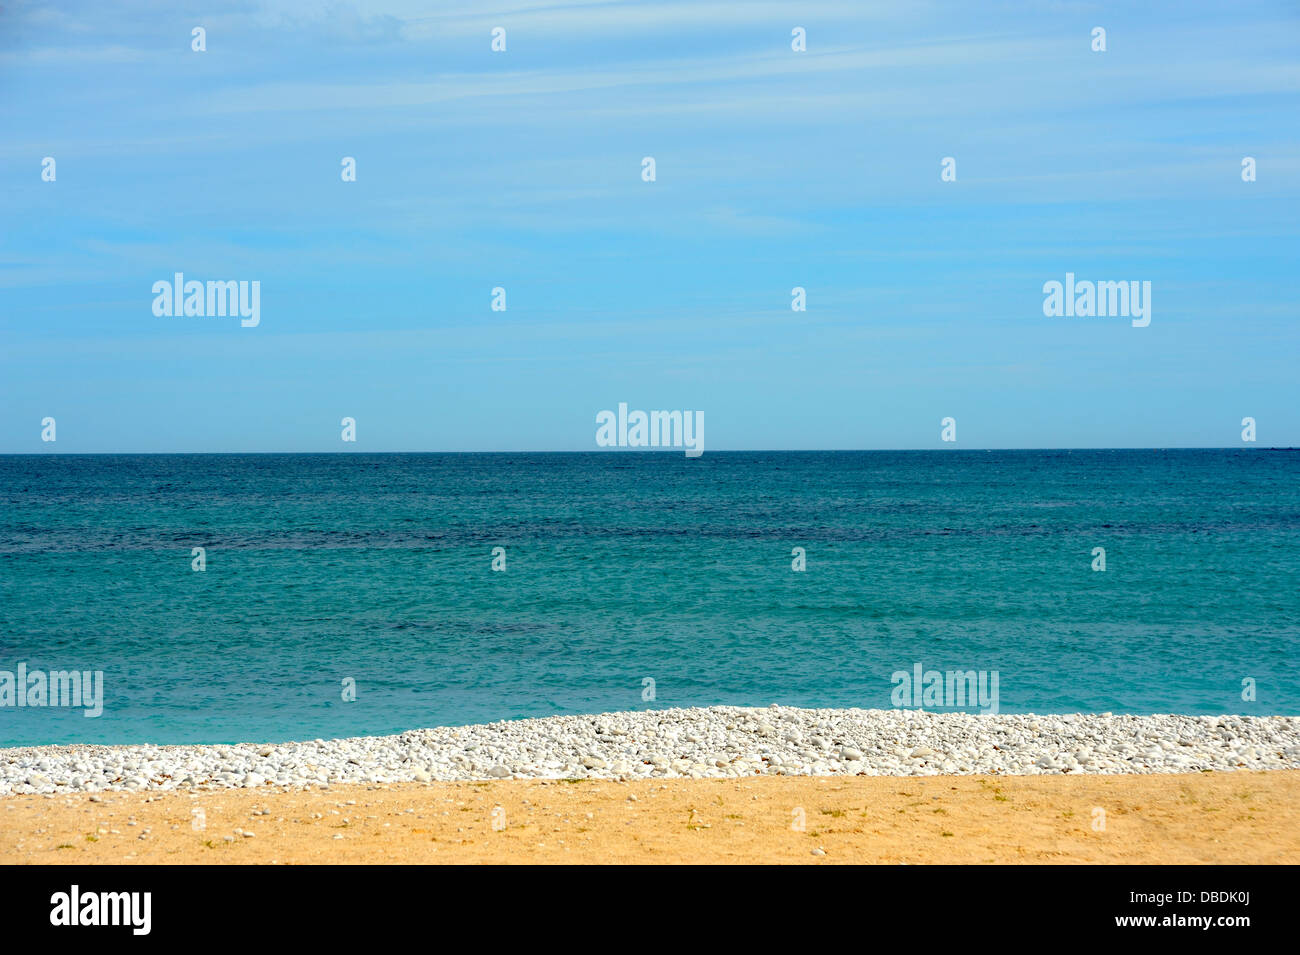 SAND PEBBLES SEA SKY BEACH  IN SPAIN - Stock Image